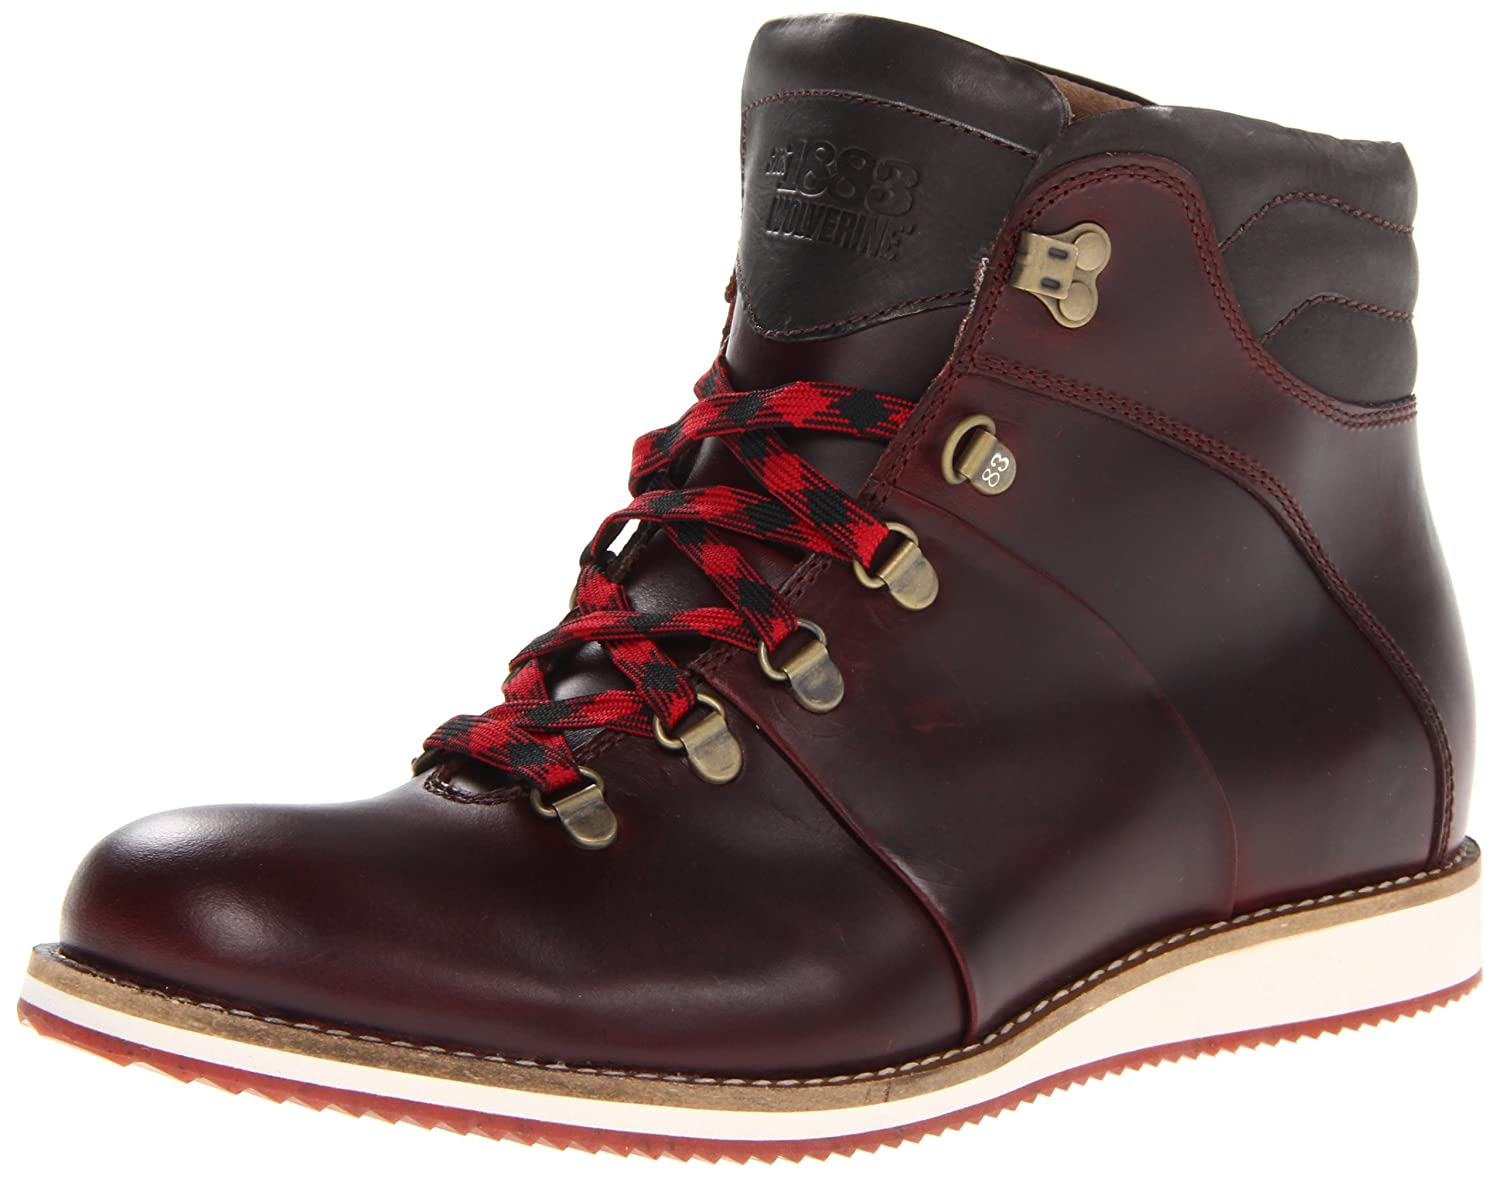 1883 by Wolverine Men's Bertel Boot